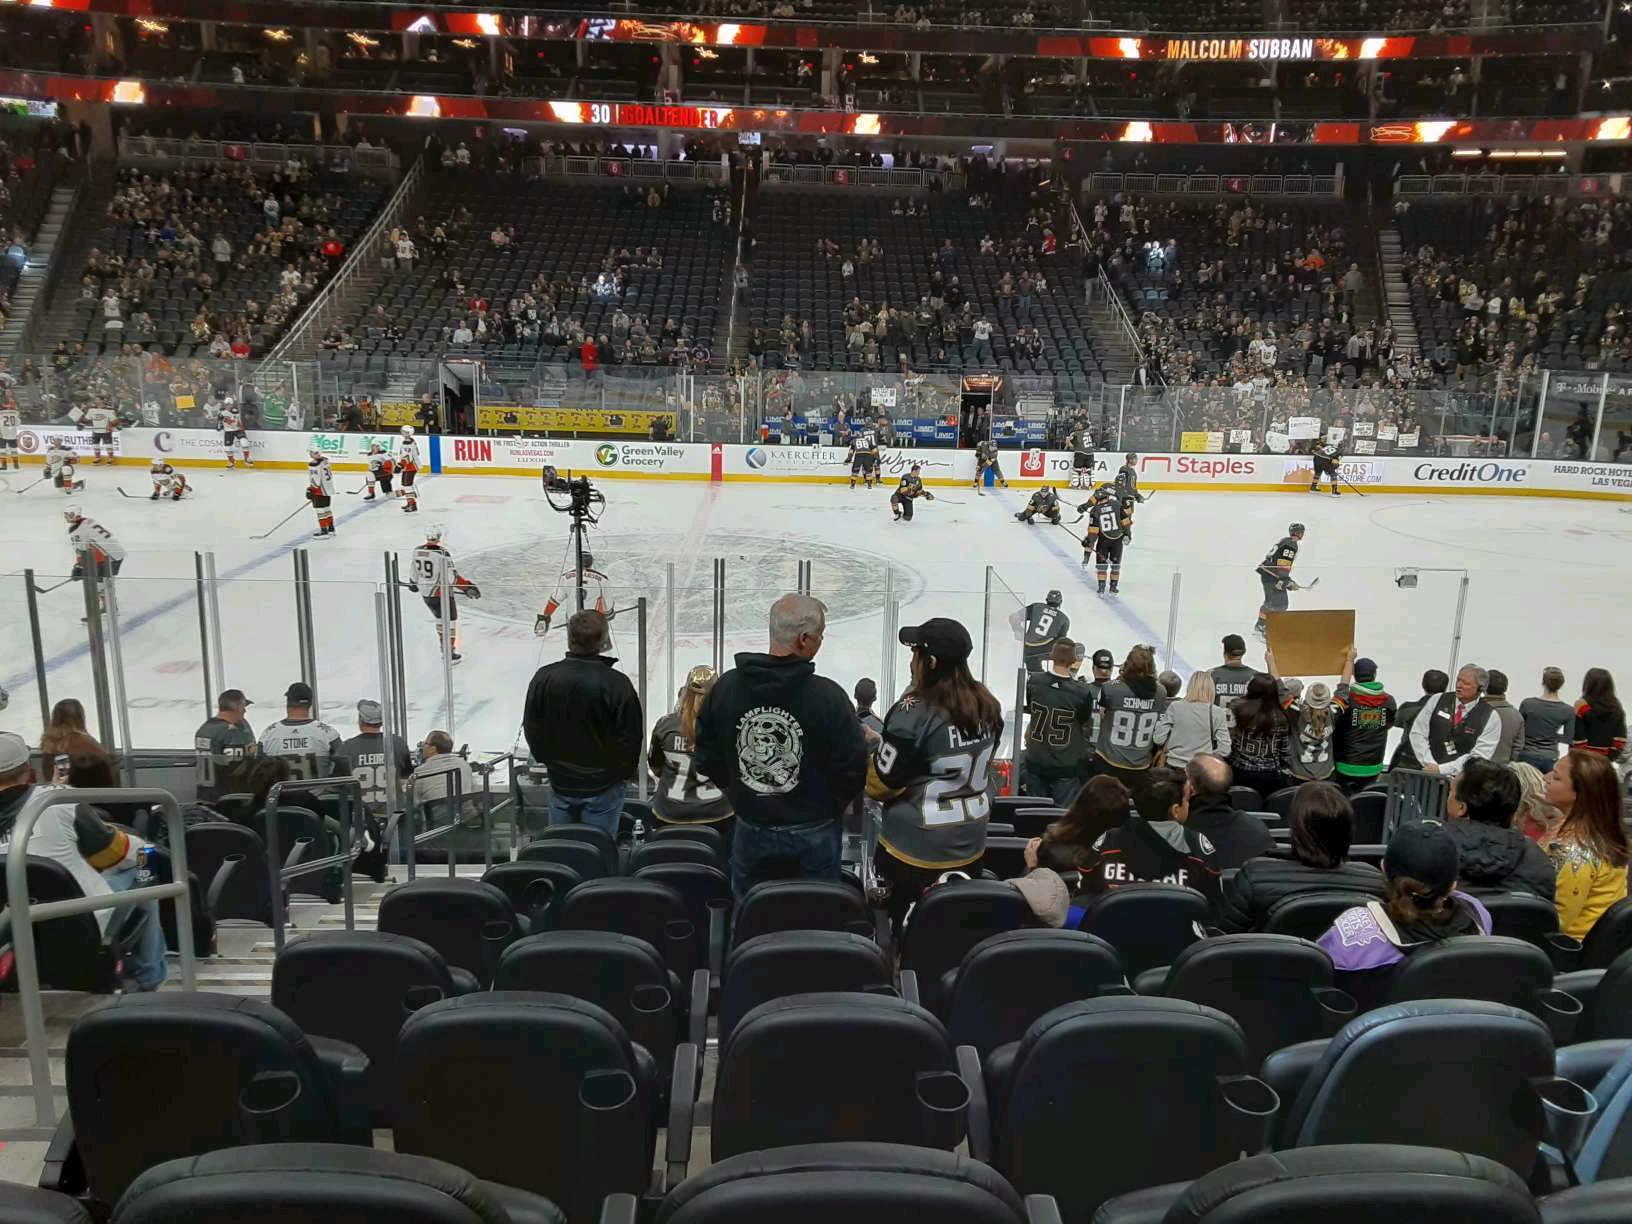 T-Mobile Arena Section 16 Row J Seat 3